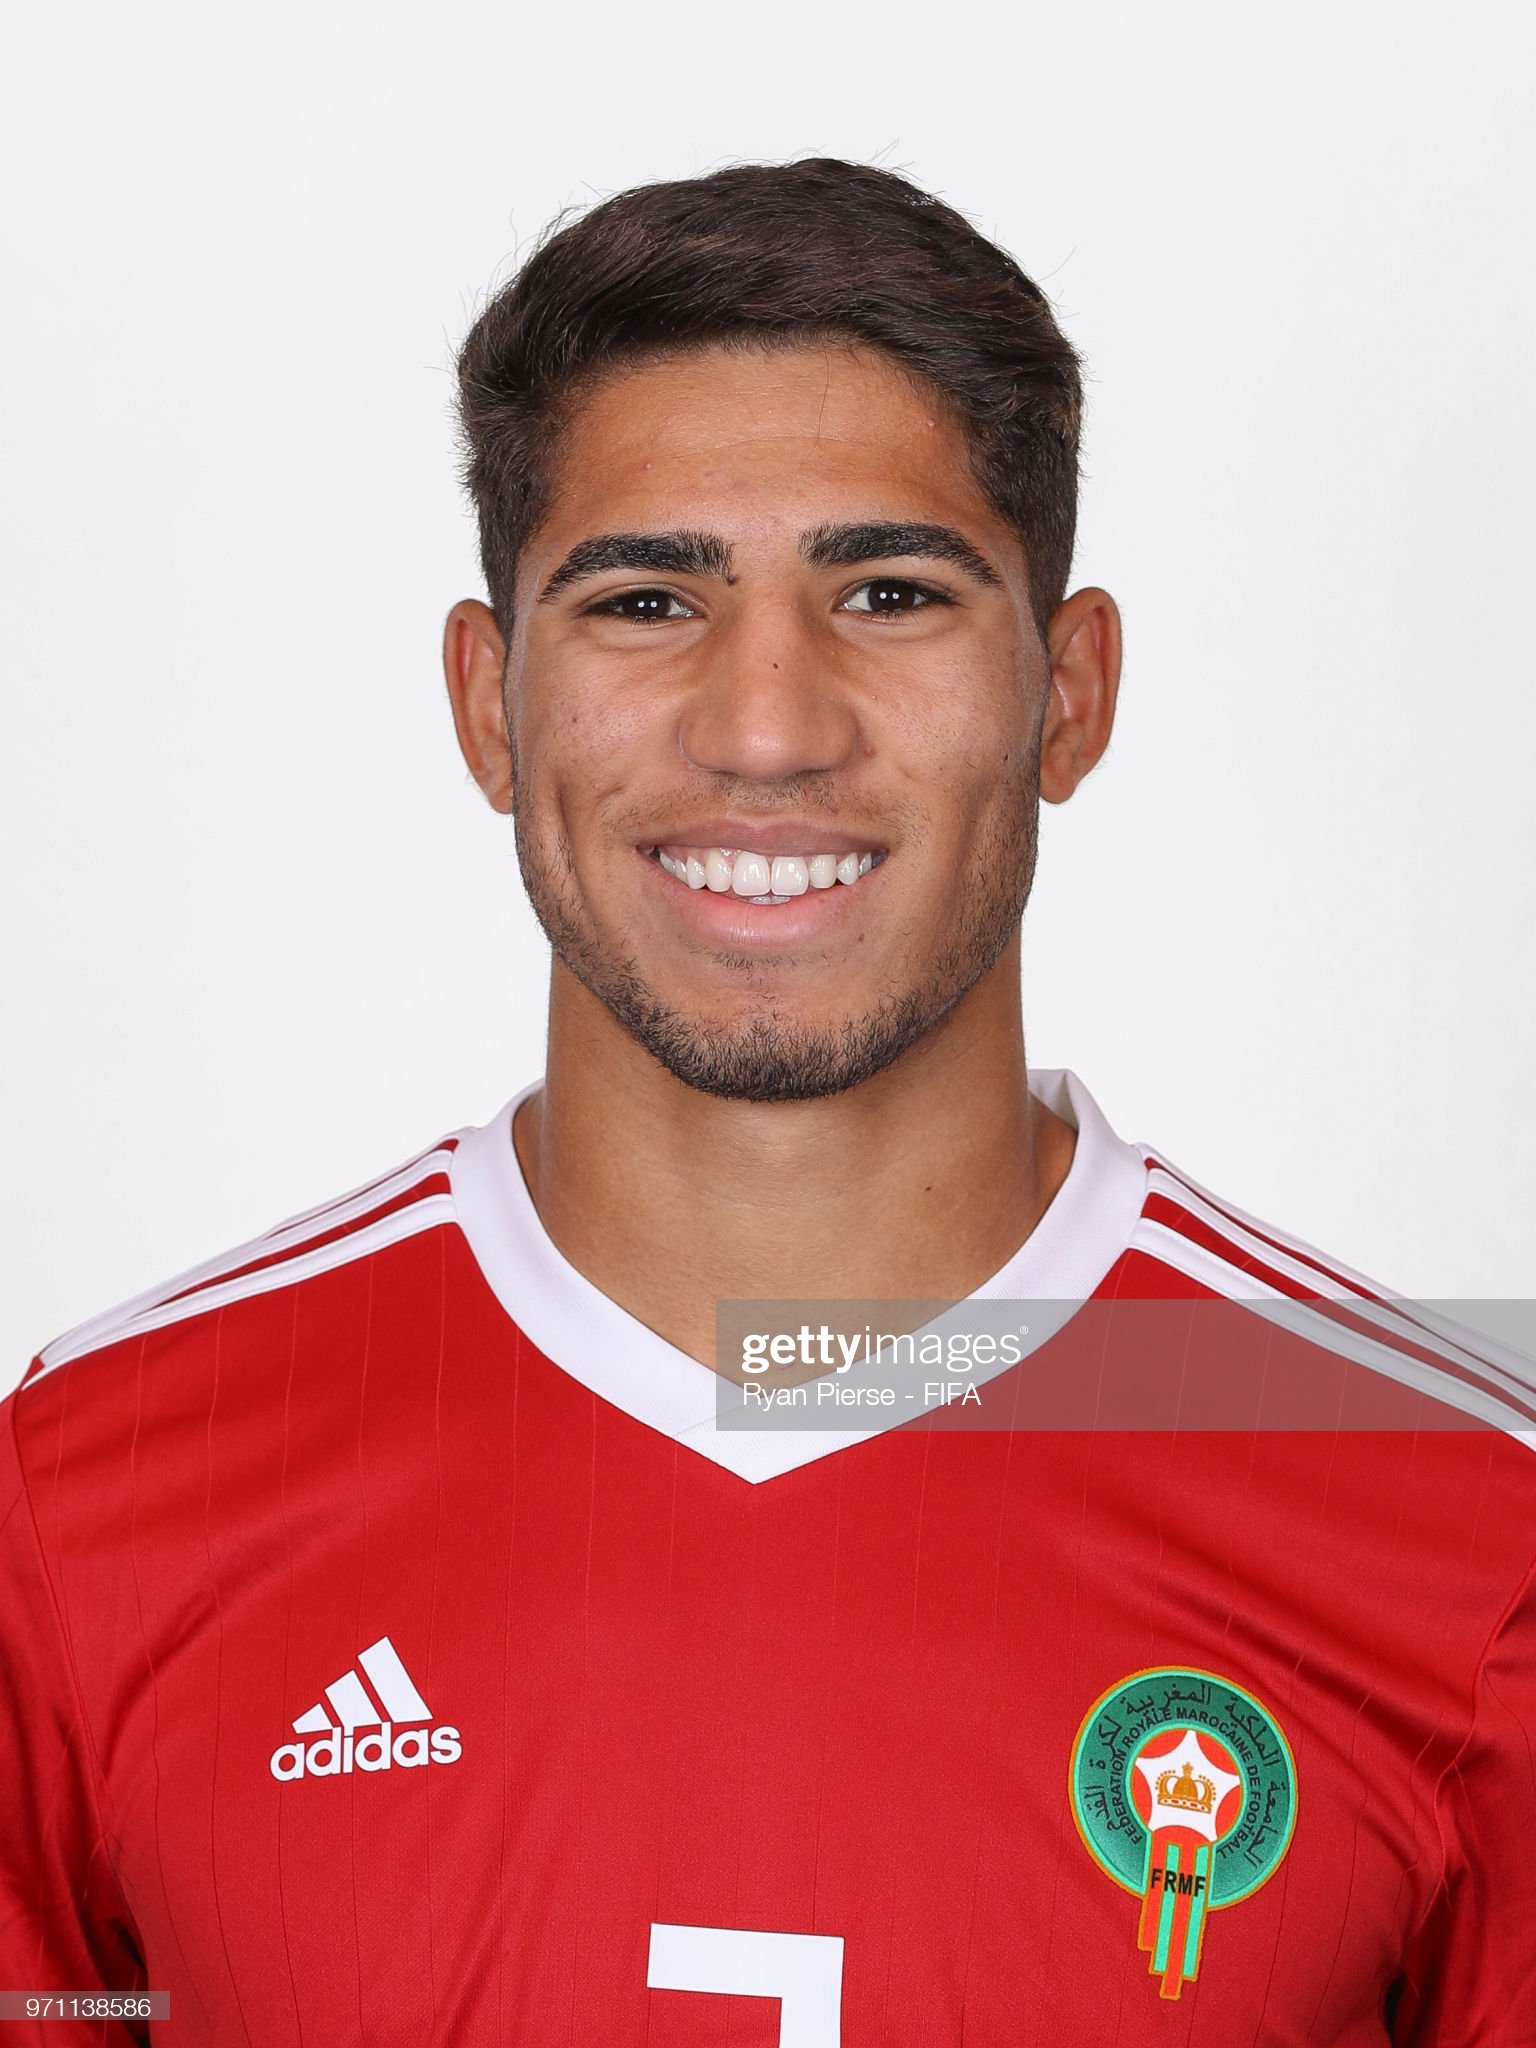 Norteafricanos Achraf-hakimi-of-morocco-poses-during-the-official-fifa-world-cup-picture-id971138586?s=2048x2048